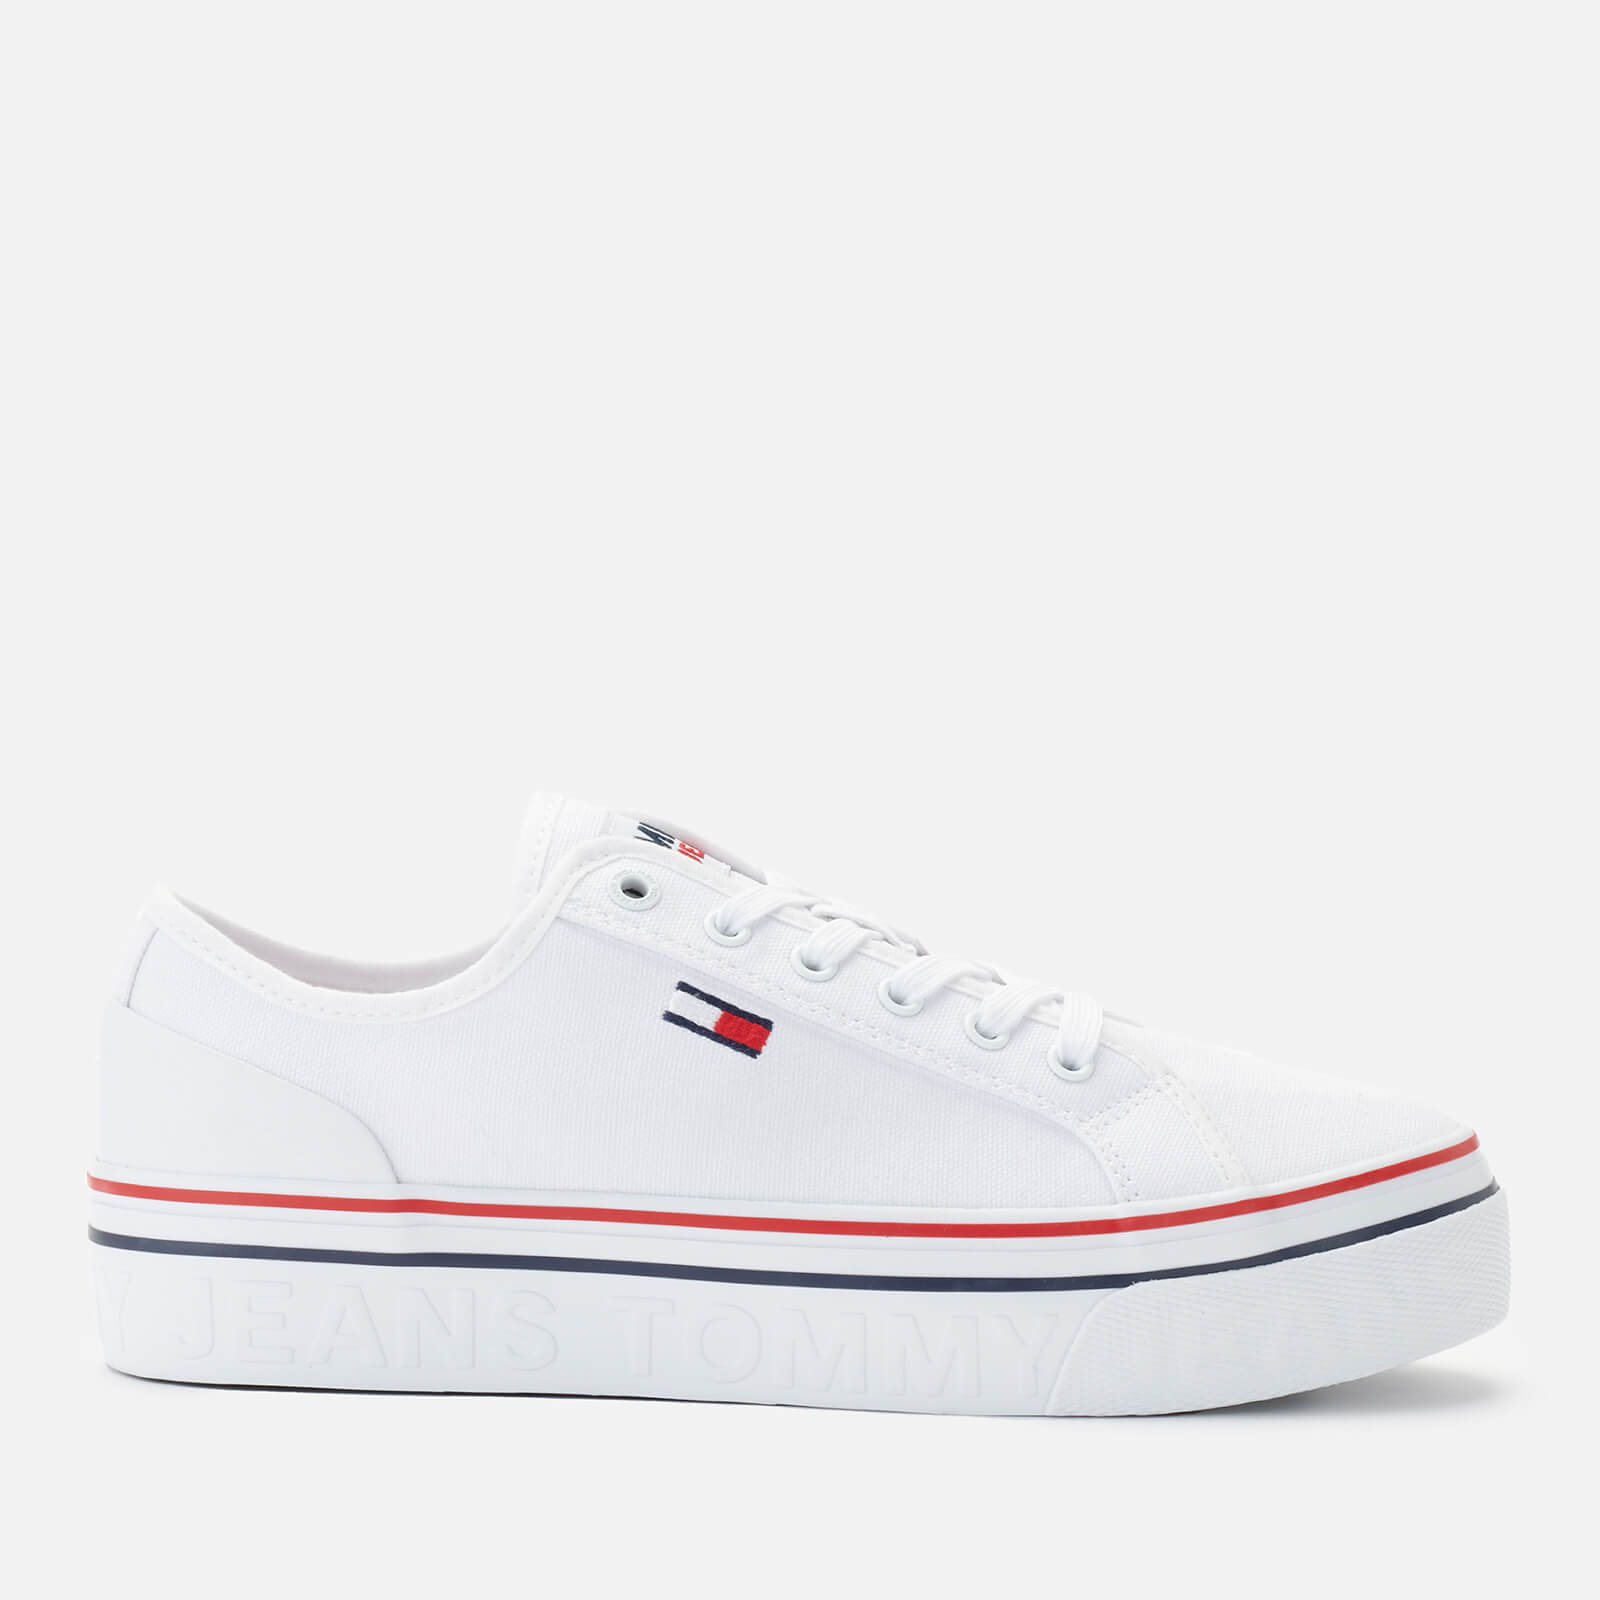 Tommy Jeans Women's Vulcanised Flatform Trainers - White - UK 3.5